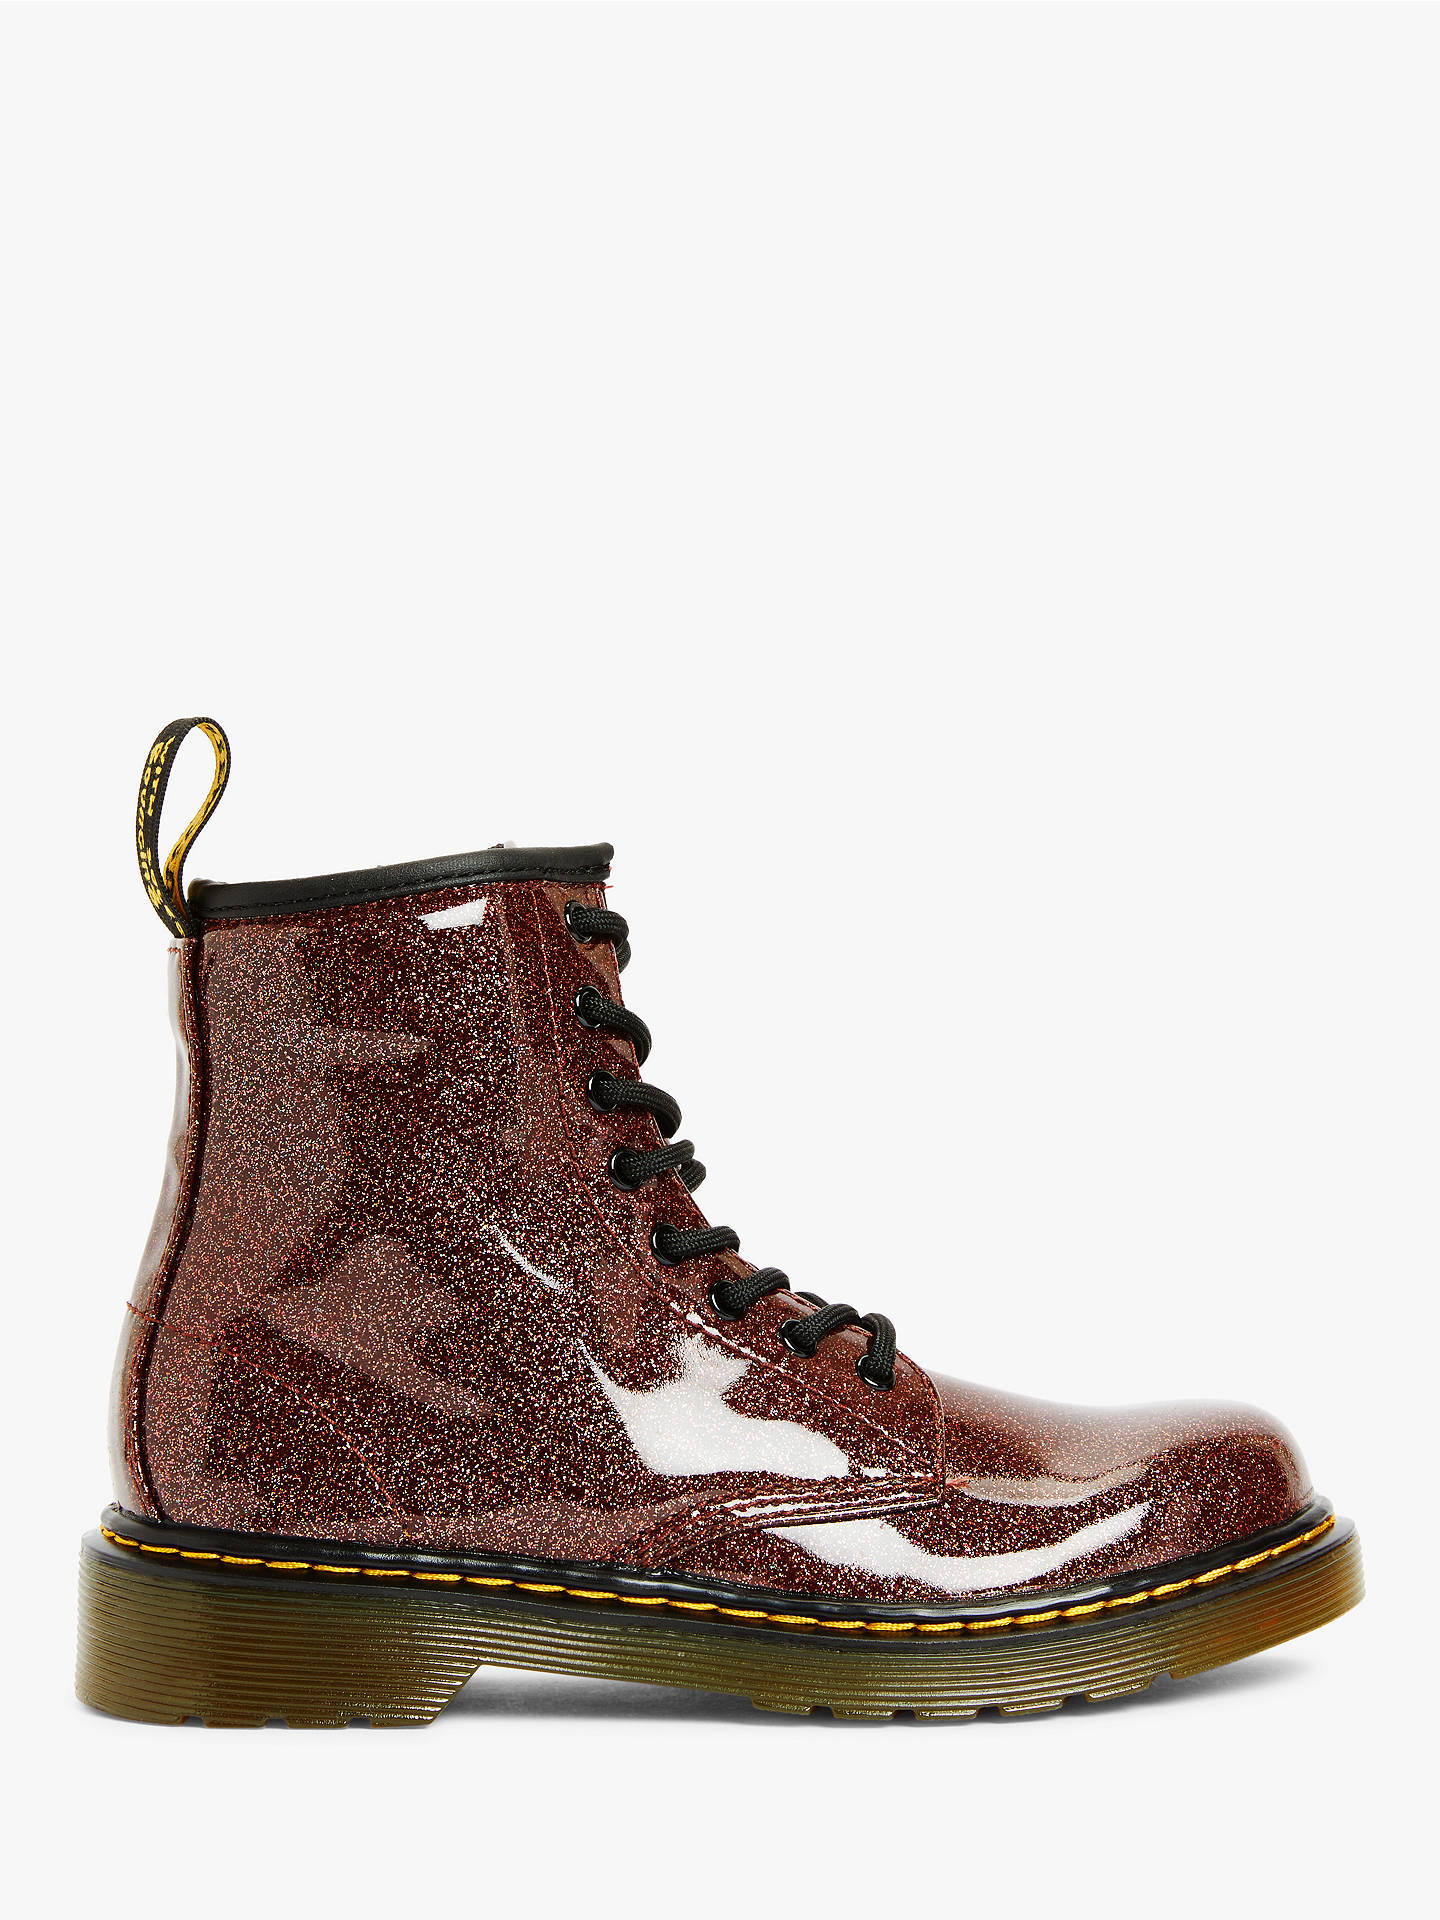 Dr Martens Children's 1460 Coated Glitter Lace Up Boots at